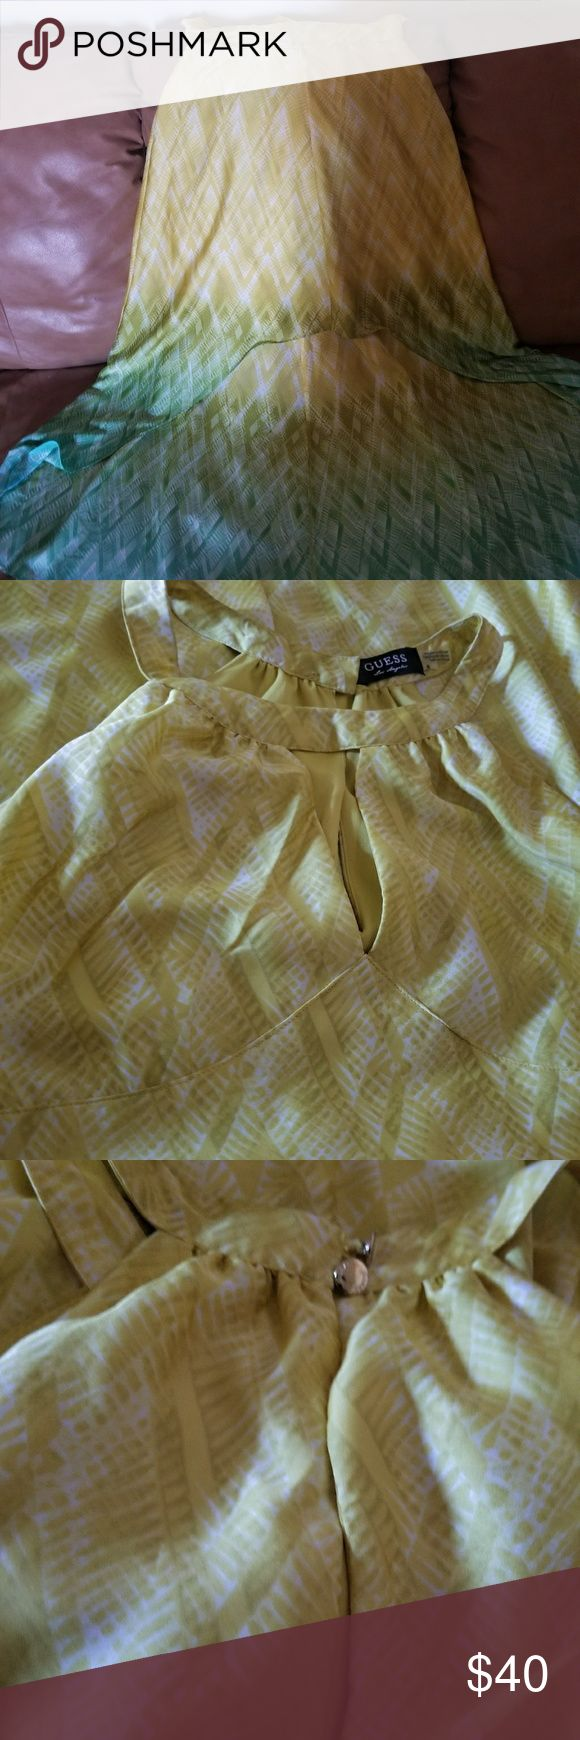 Guess dress High low guess dress worn once to a wedding. In EUC. Guess Dresses High Low